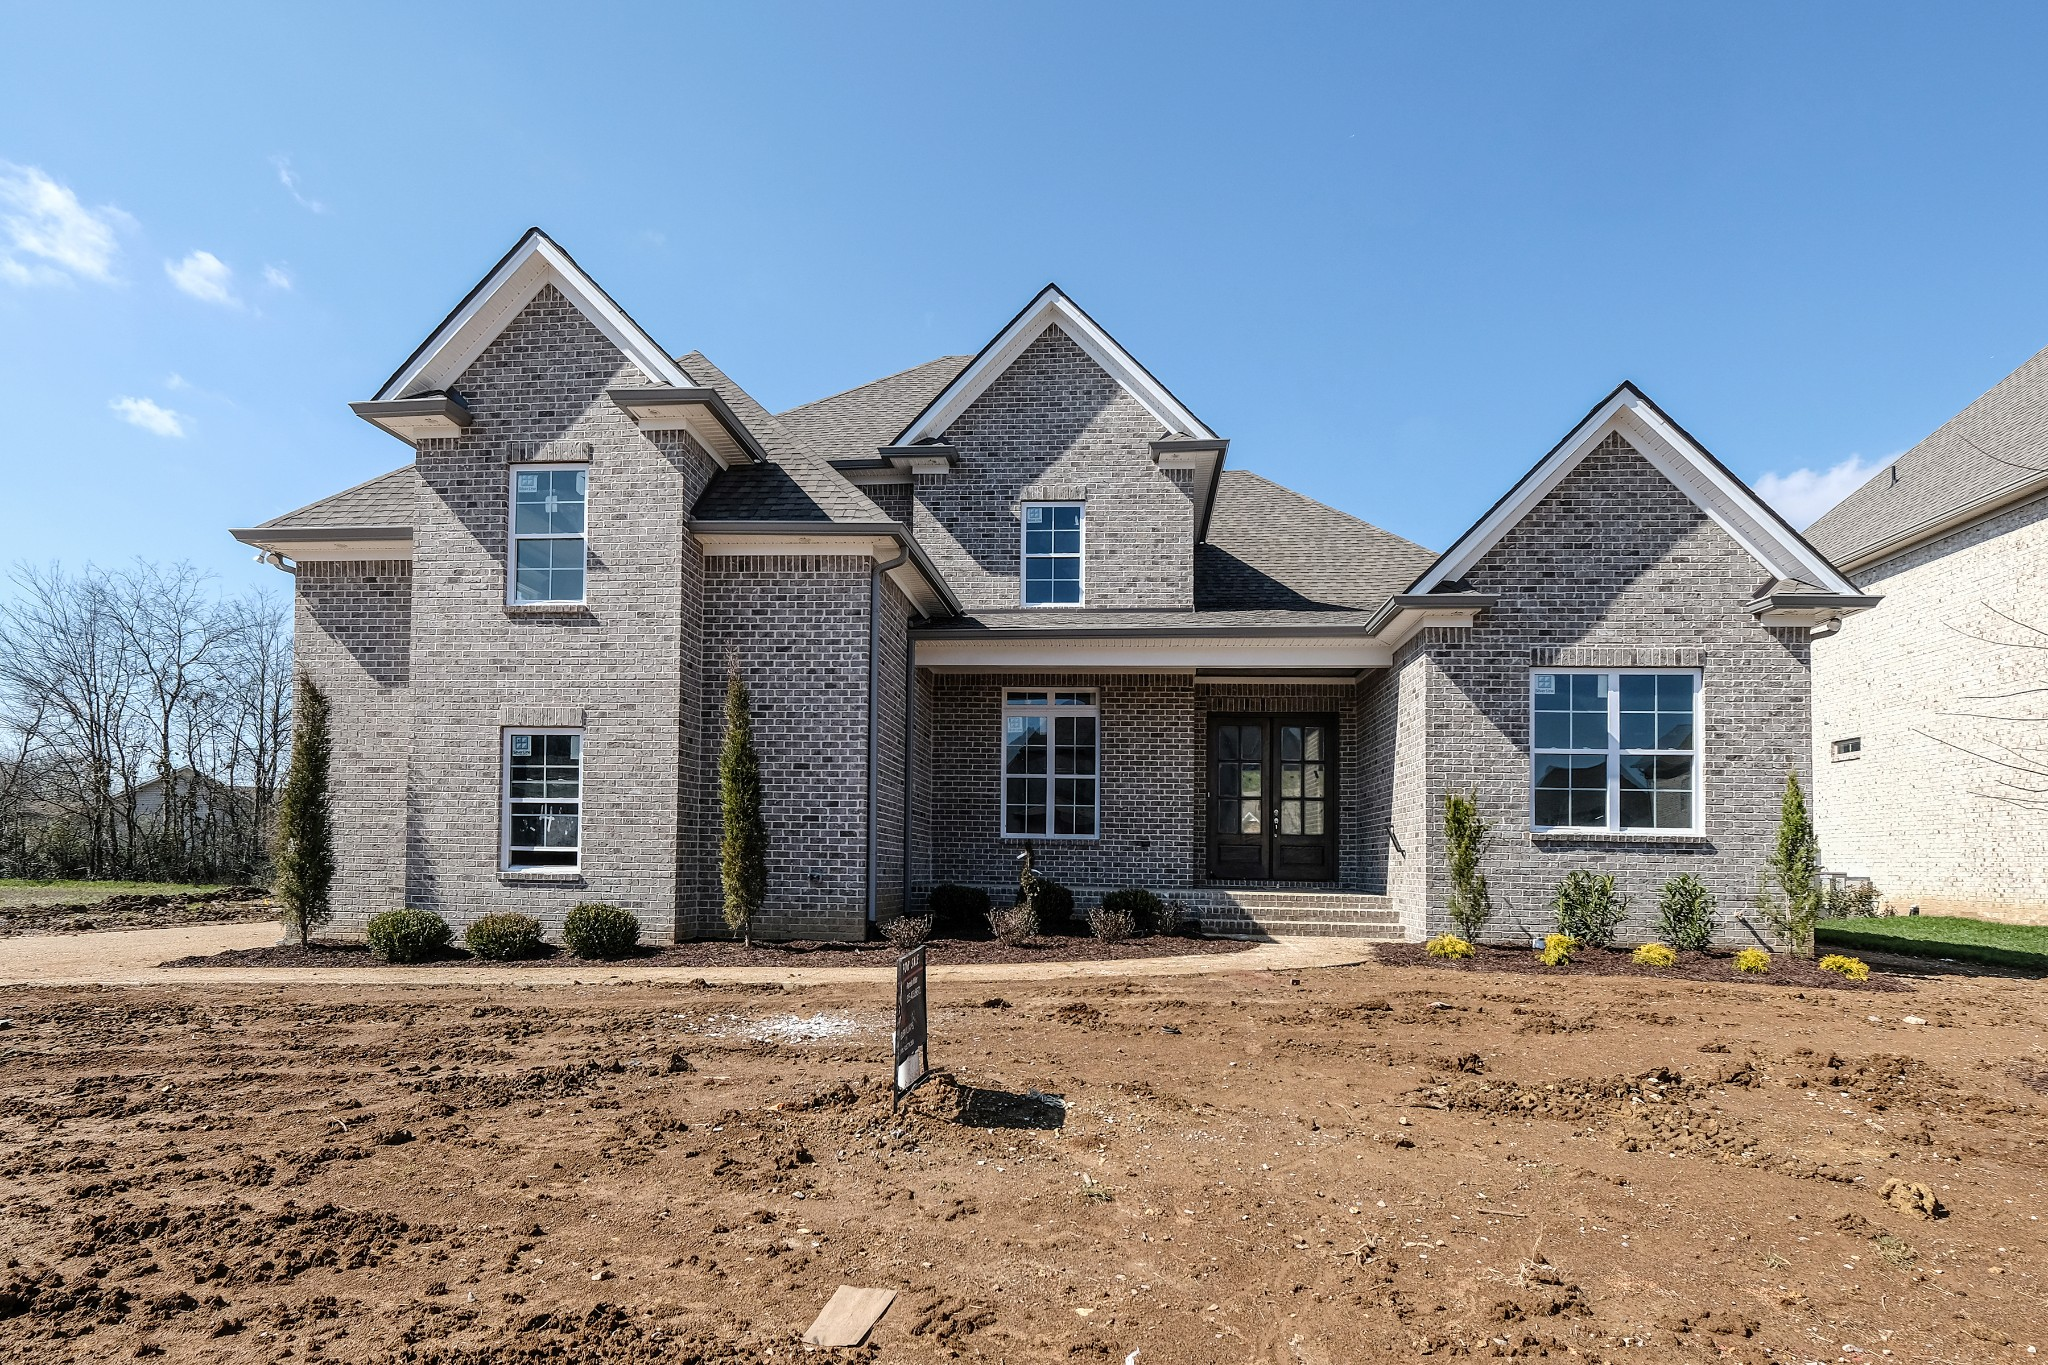 2057 Autumn Ridge Way (Lot 244), one of homes for sale in Spring Hill